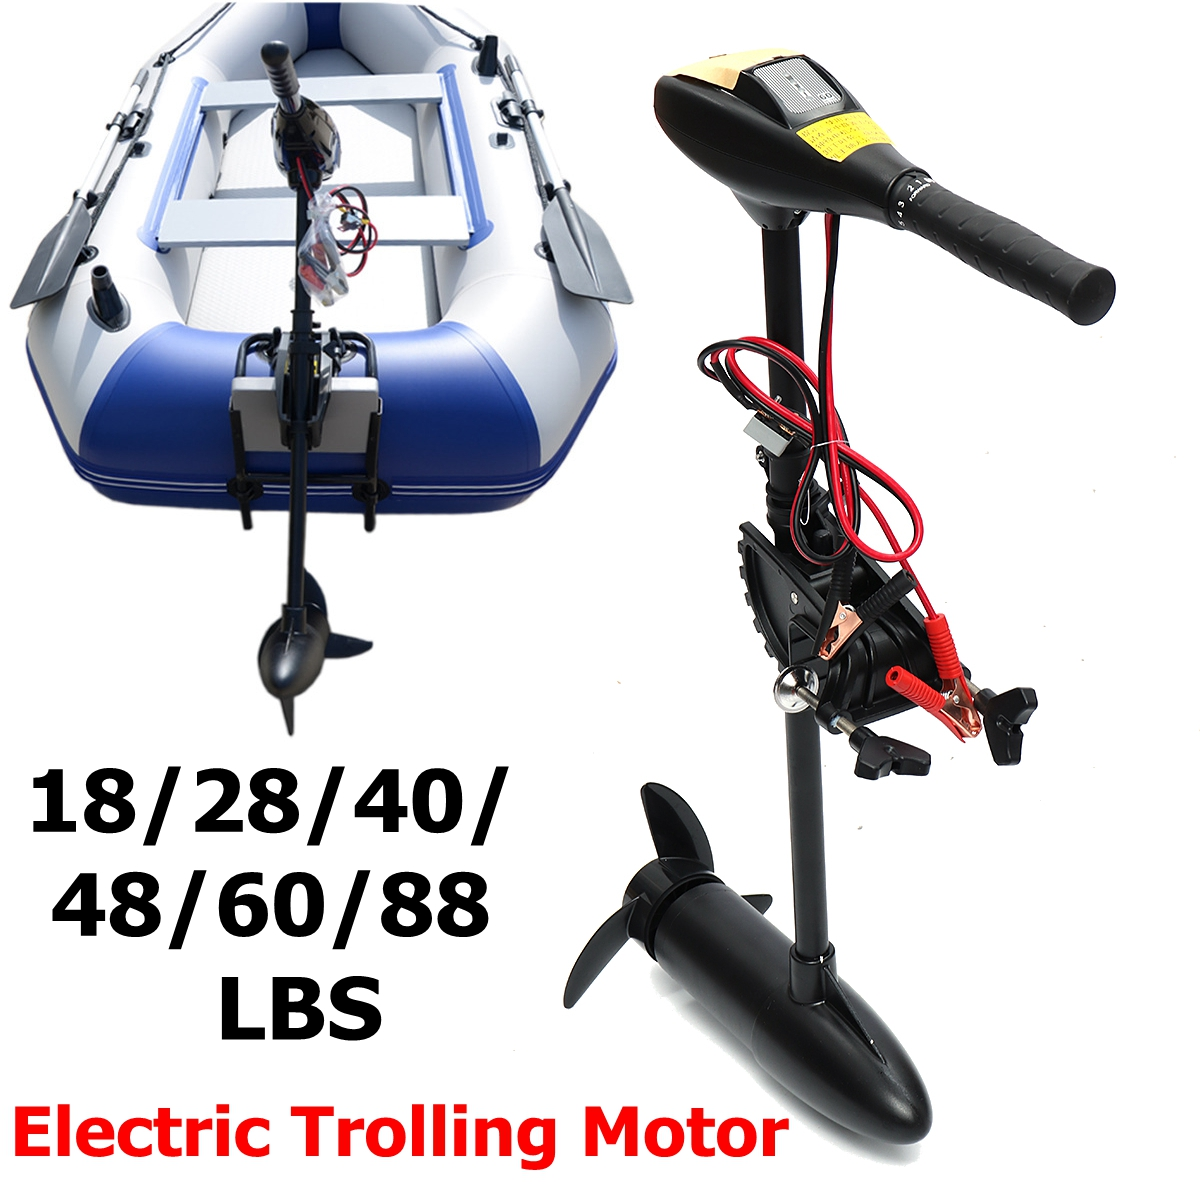 DC 12V 24V 18/28/40/48/60/88LBS Electric Trolling Motor Inflatable Boat Outboard Engine electric outboard engine fishing boat propeller with outboard engine 12v 684w1750 rotationl speed dc motor